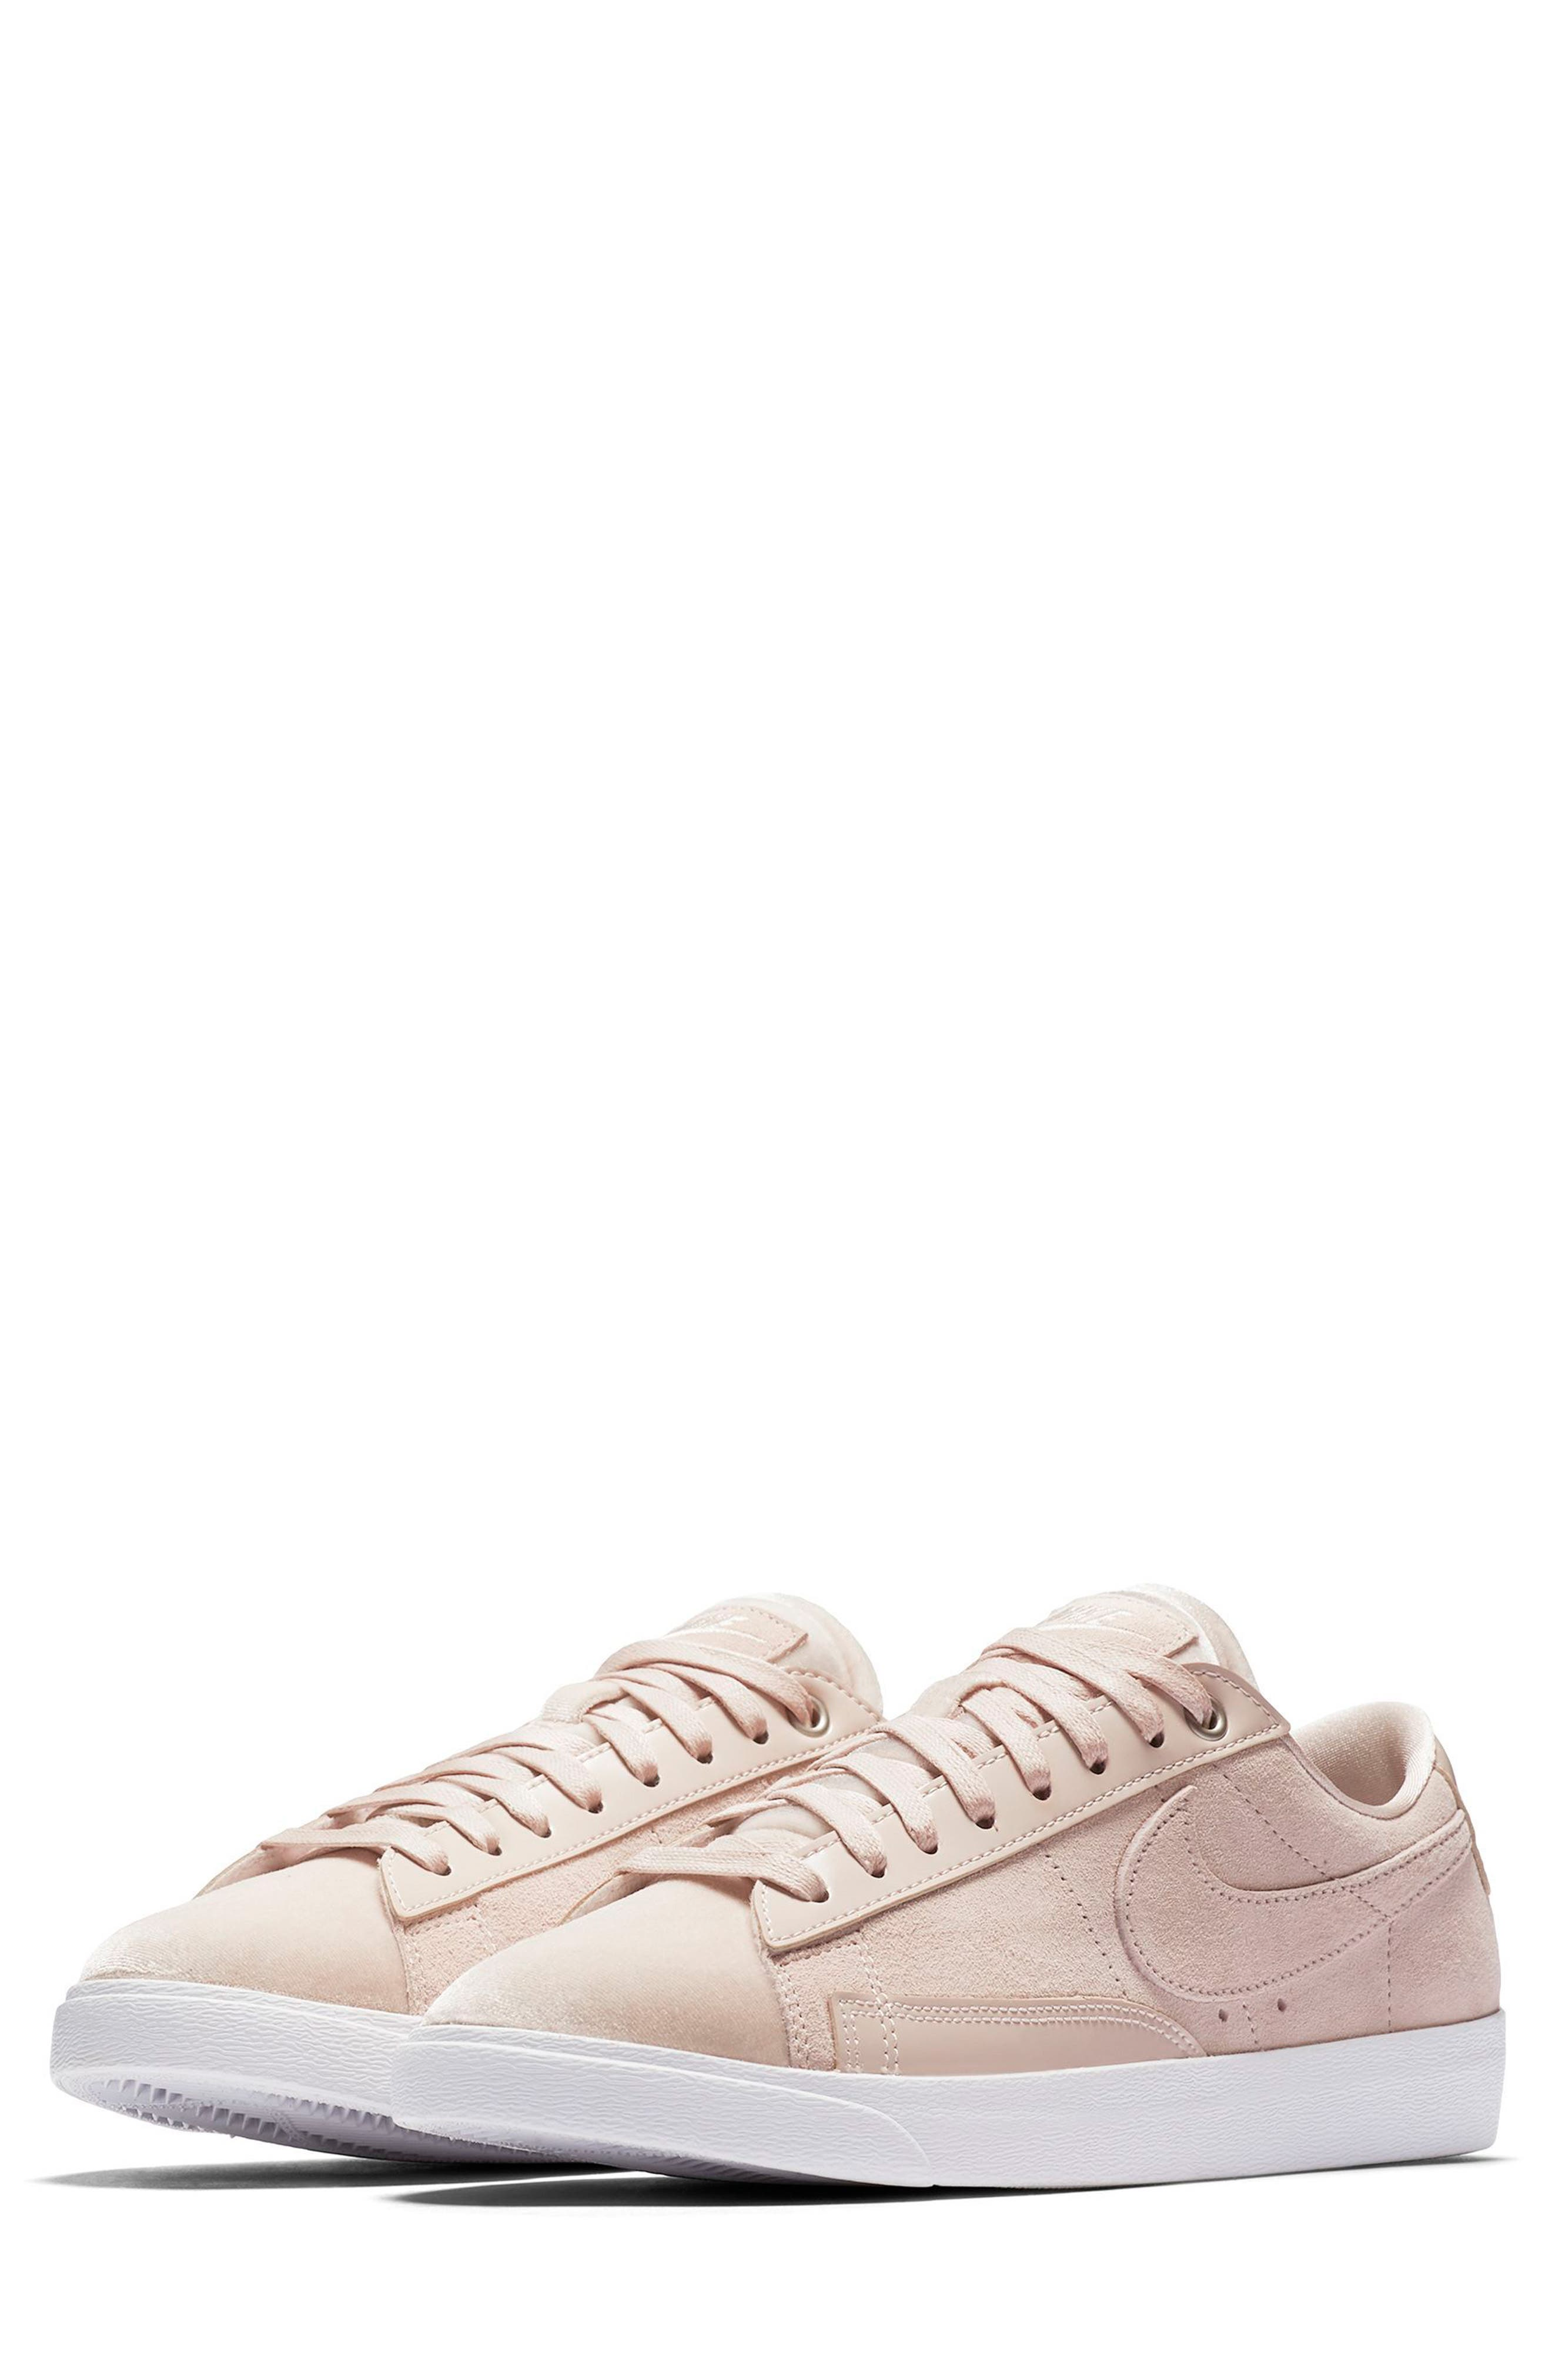 new arrival 8770b 40c4d ... cushioning without extra weight, and autoclave construction fuses the  upper to the sole for a sleek look. Style Name  Nike Blazer Low Lx Sneaker  (Women) ...